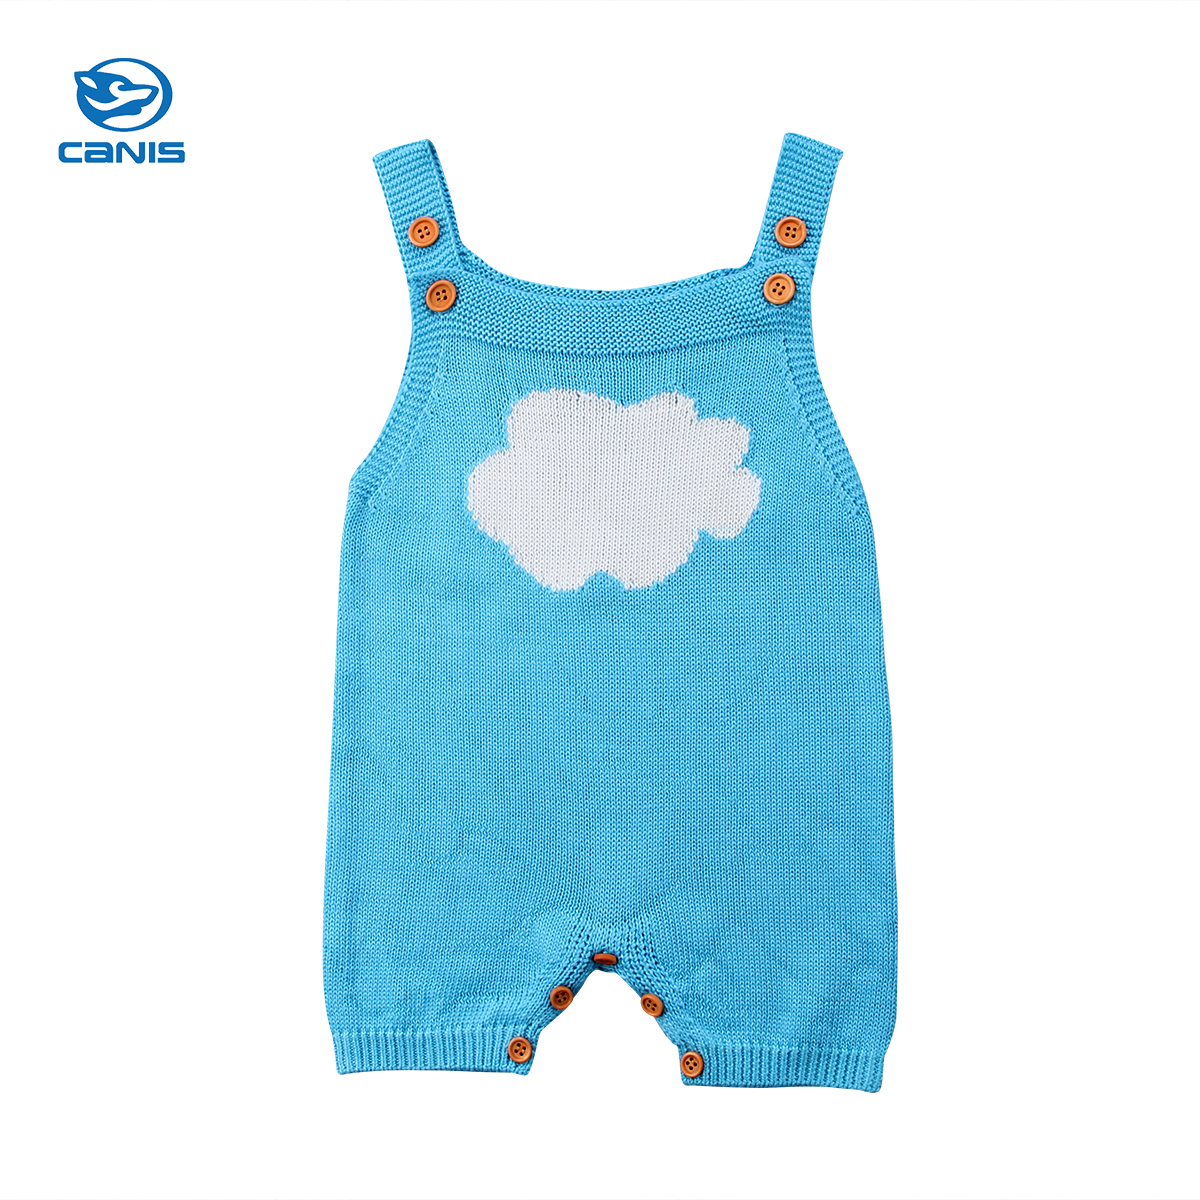 2018 Brand New Newborn Toddler Infant Baby Boy Girl Sleeveless Knit Romper Sunsuit Wool Outfits Lovely Cloud Clothes infant newborn toddler baby boy girl clothes summer spring romper playsuit casual short sleeve clothes solid outfits 0 24m